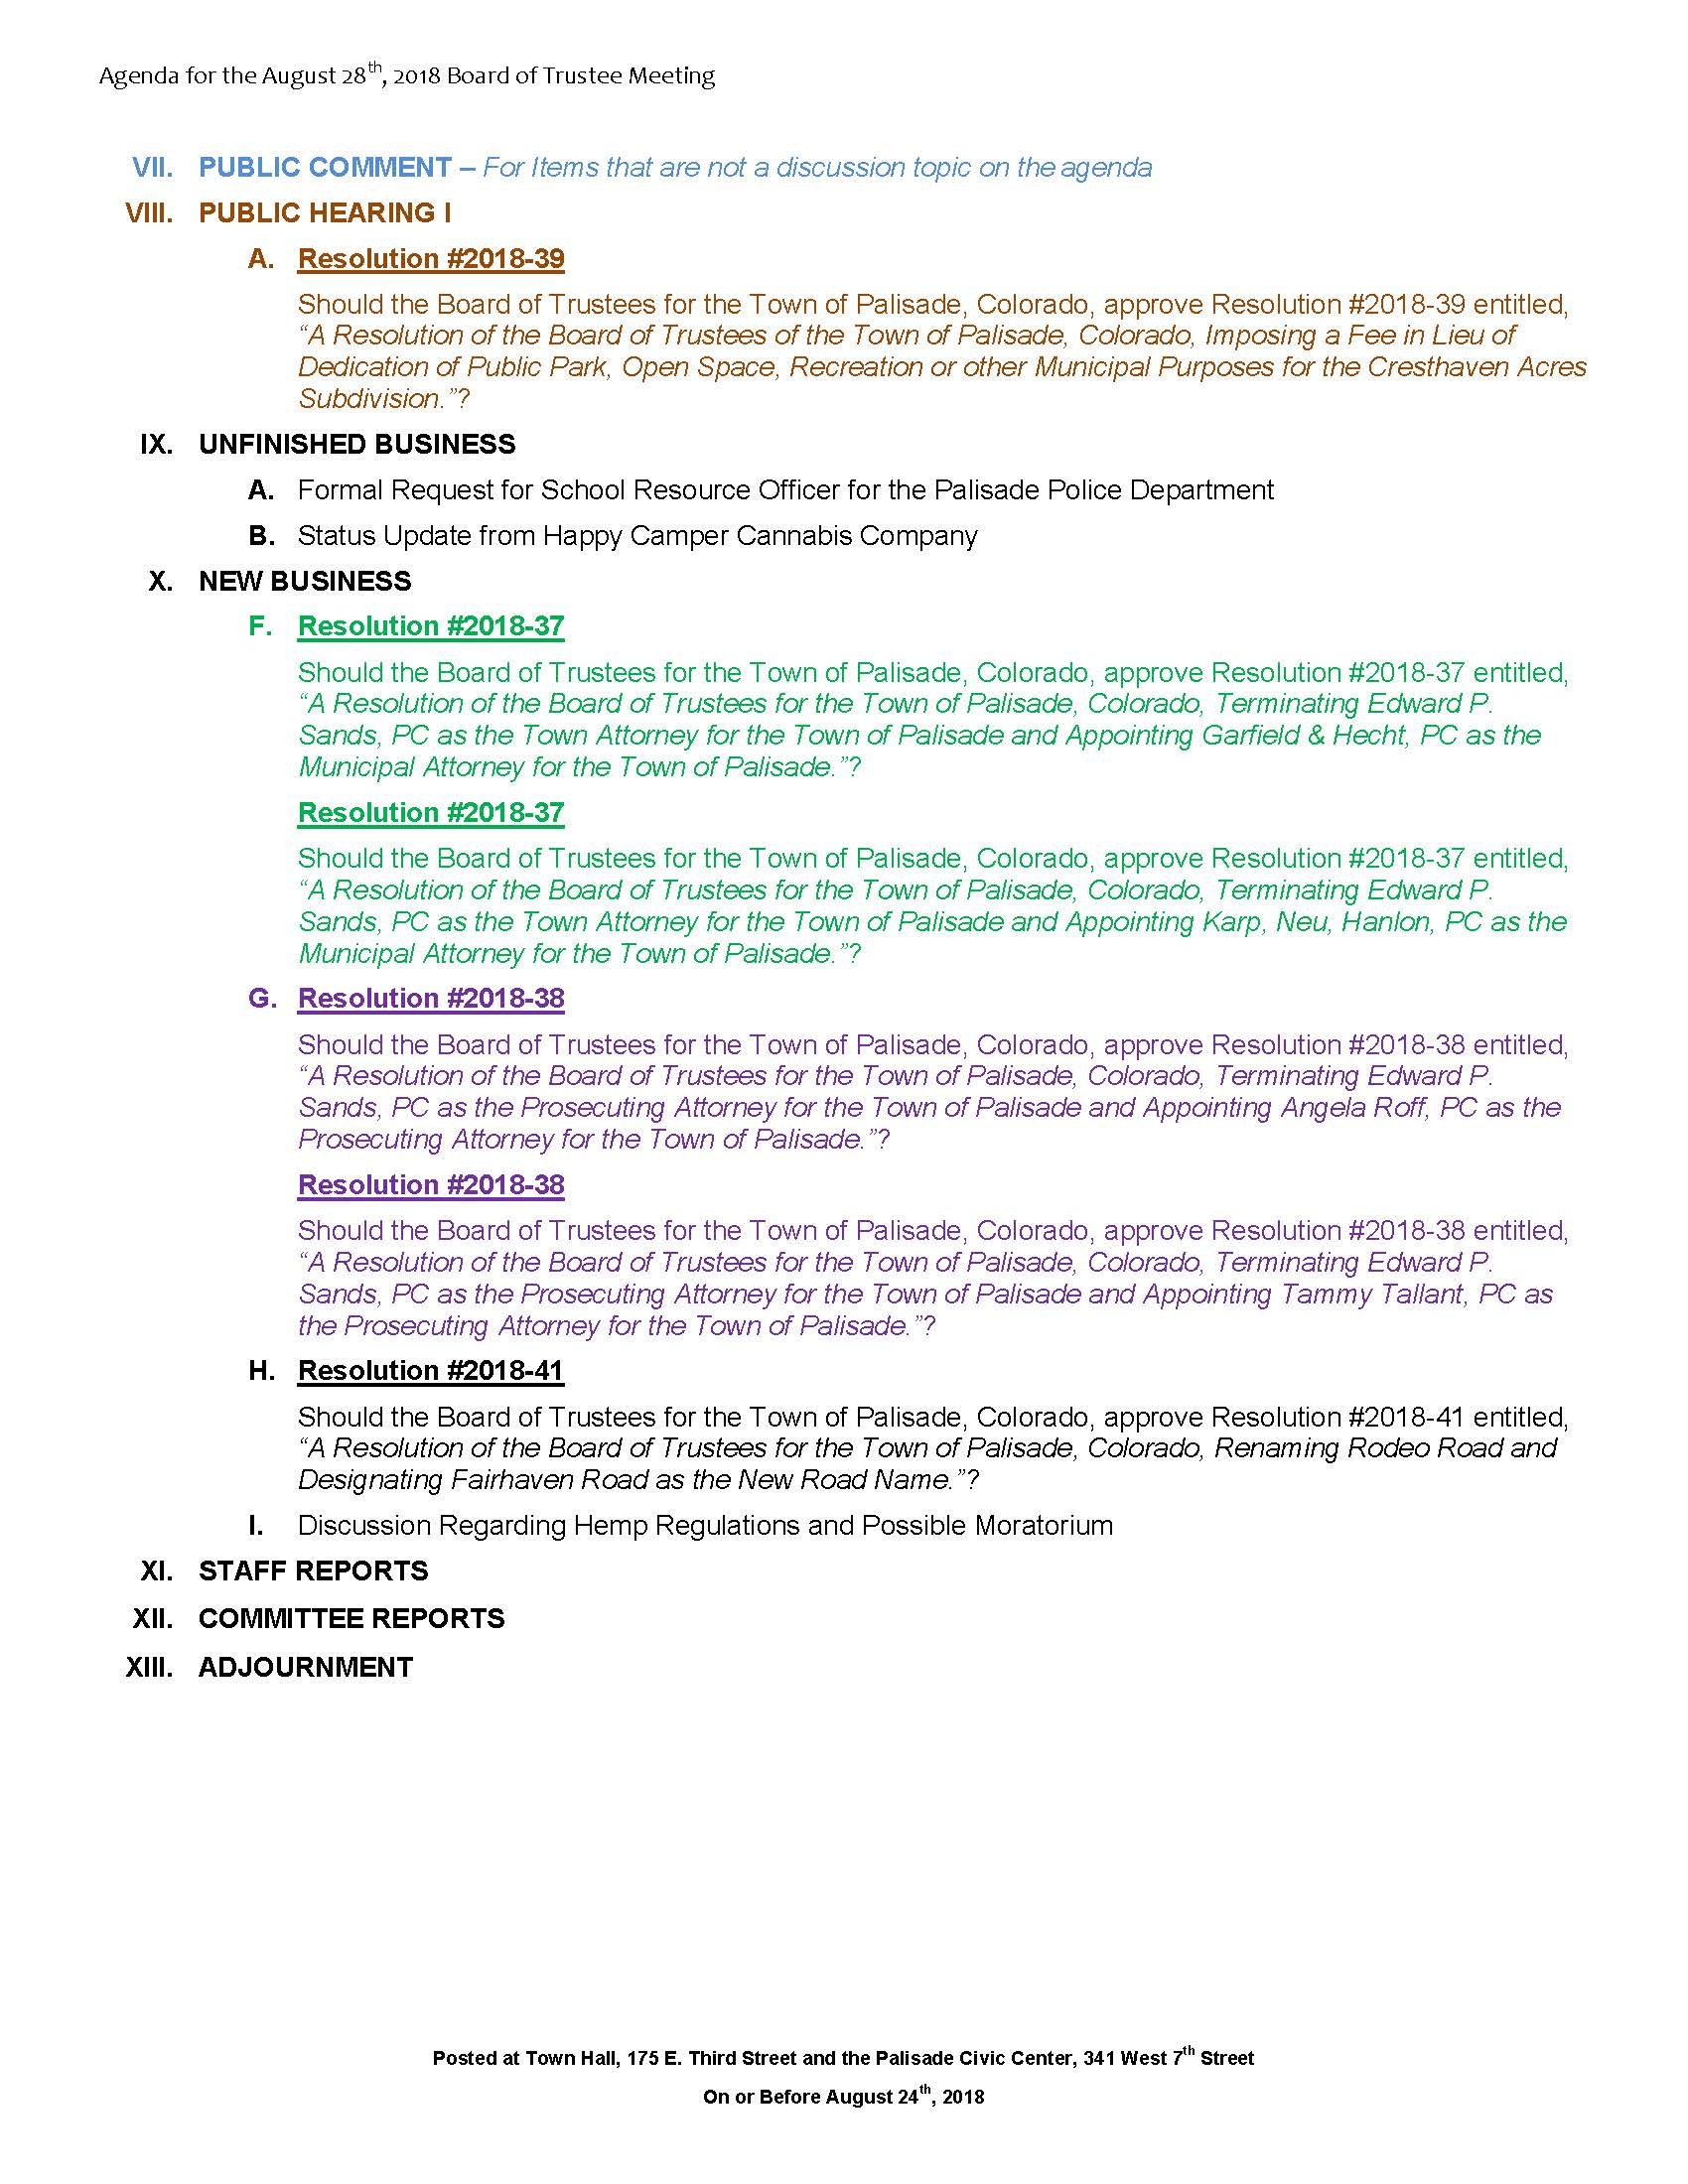 August 28th 2018 Board Meeting Agenda Page 2